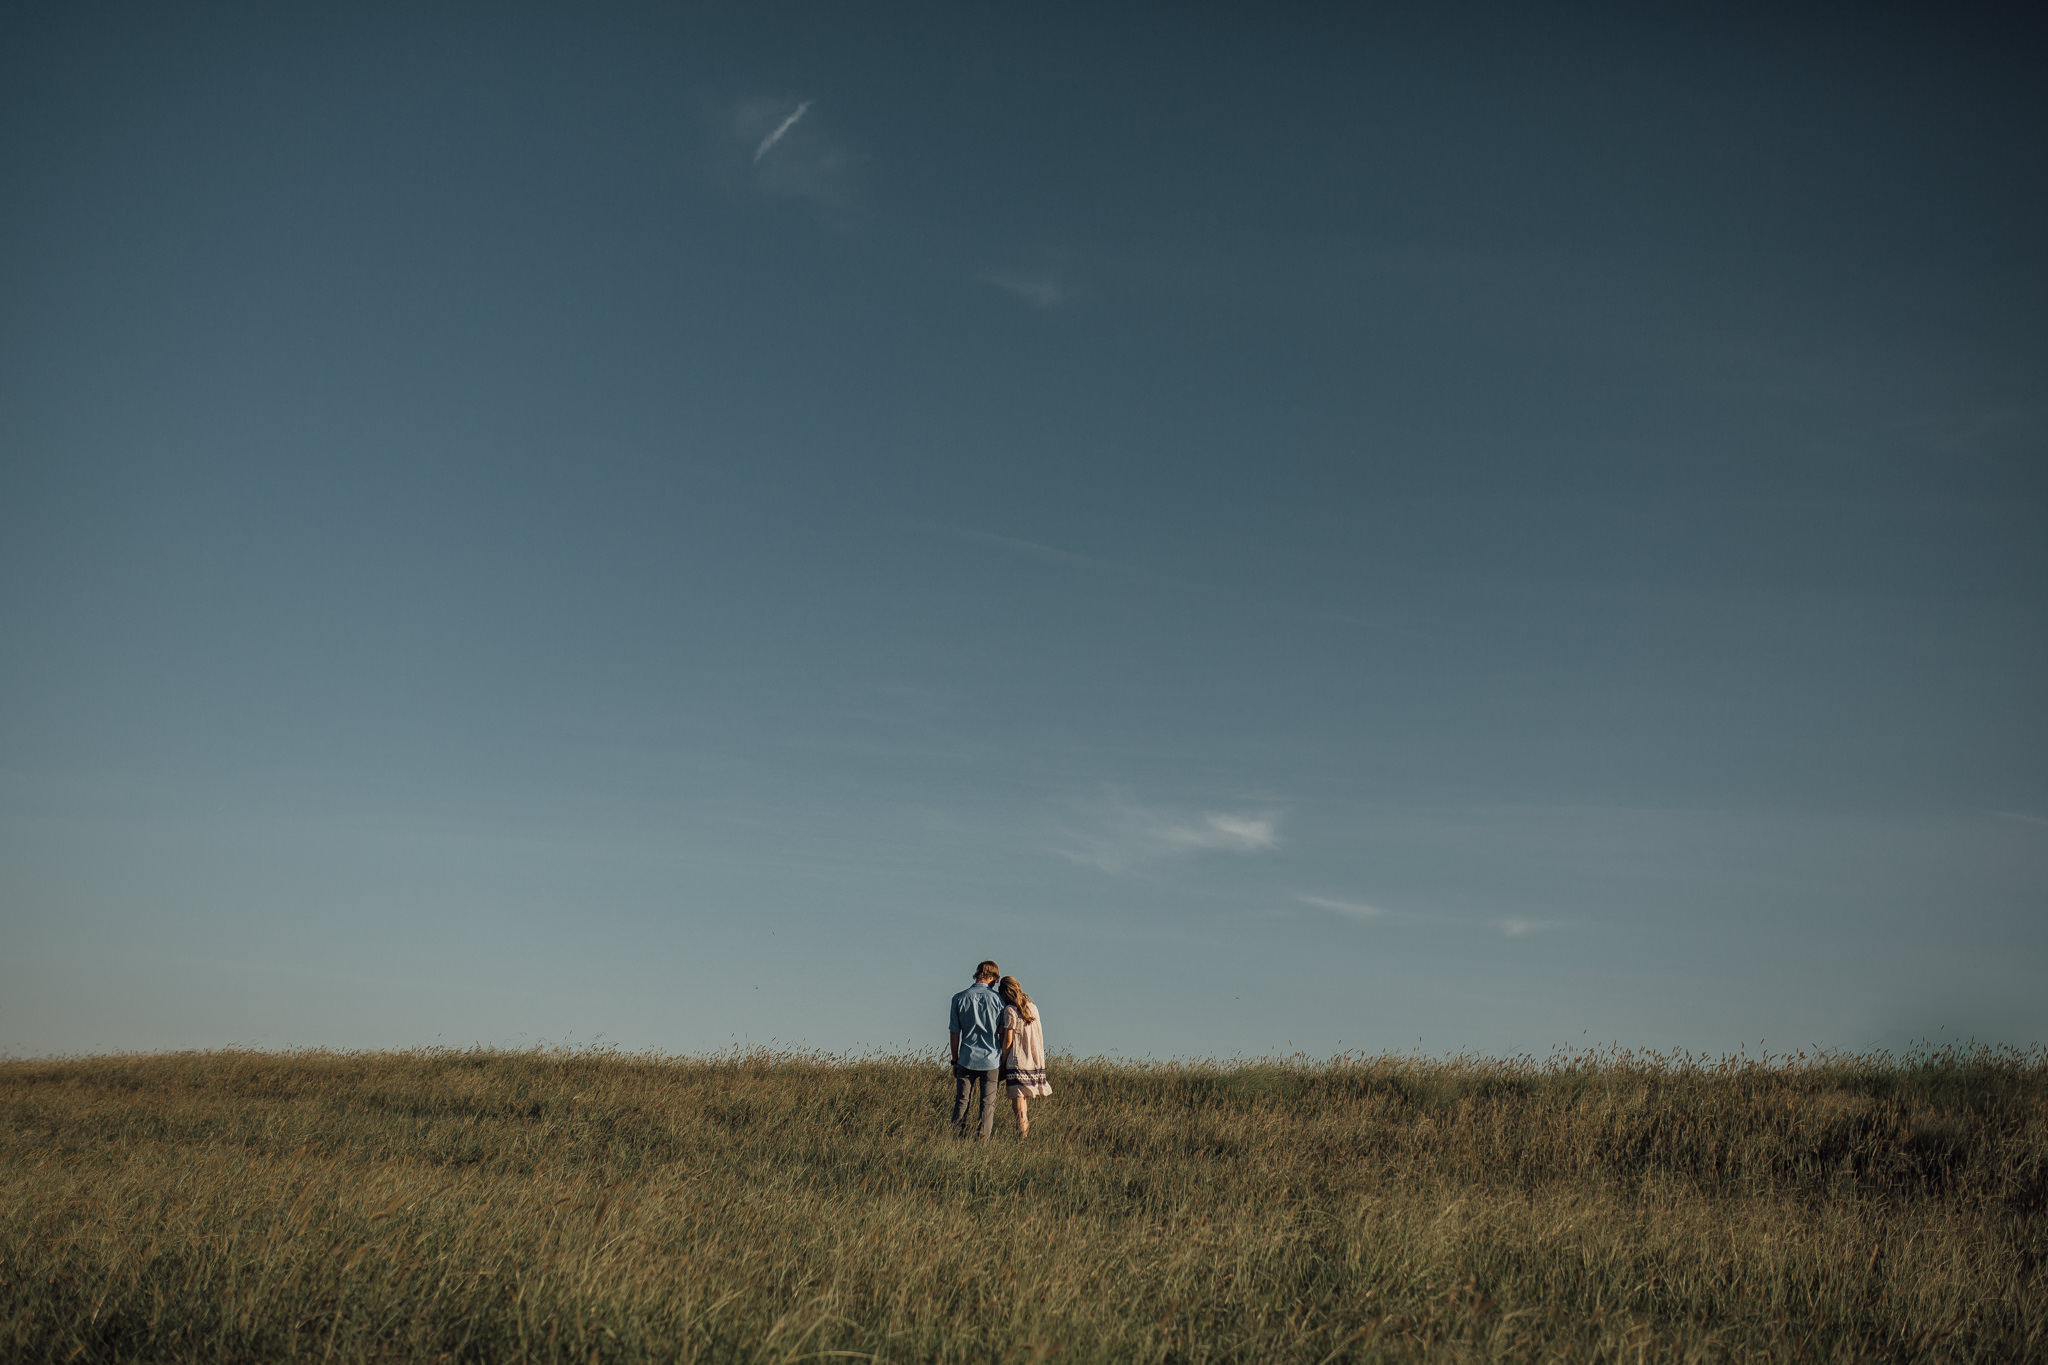 cassie-cook-photography-shelby-farms-engagment-pictures-memphis-wedding-photographer-513.jpg